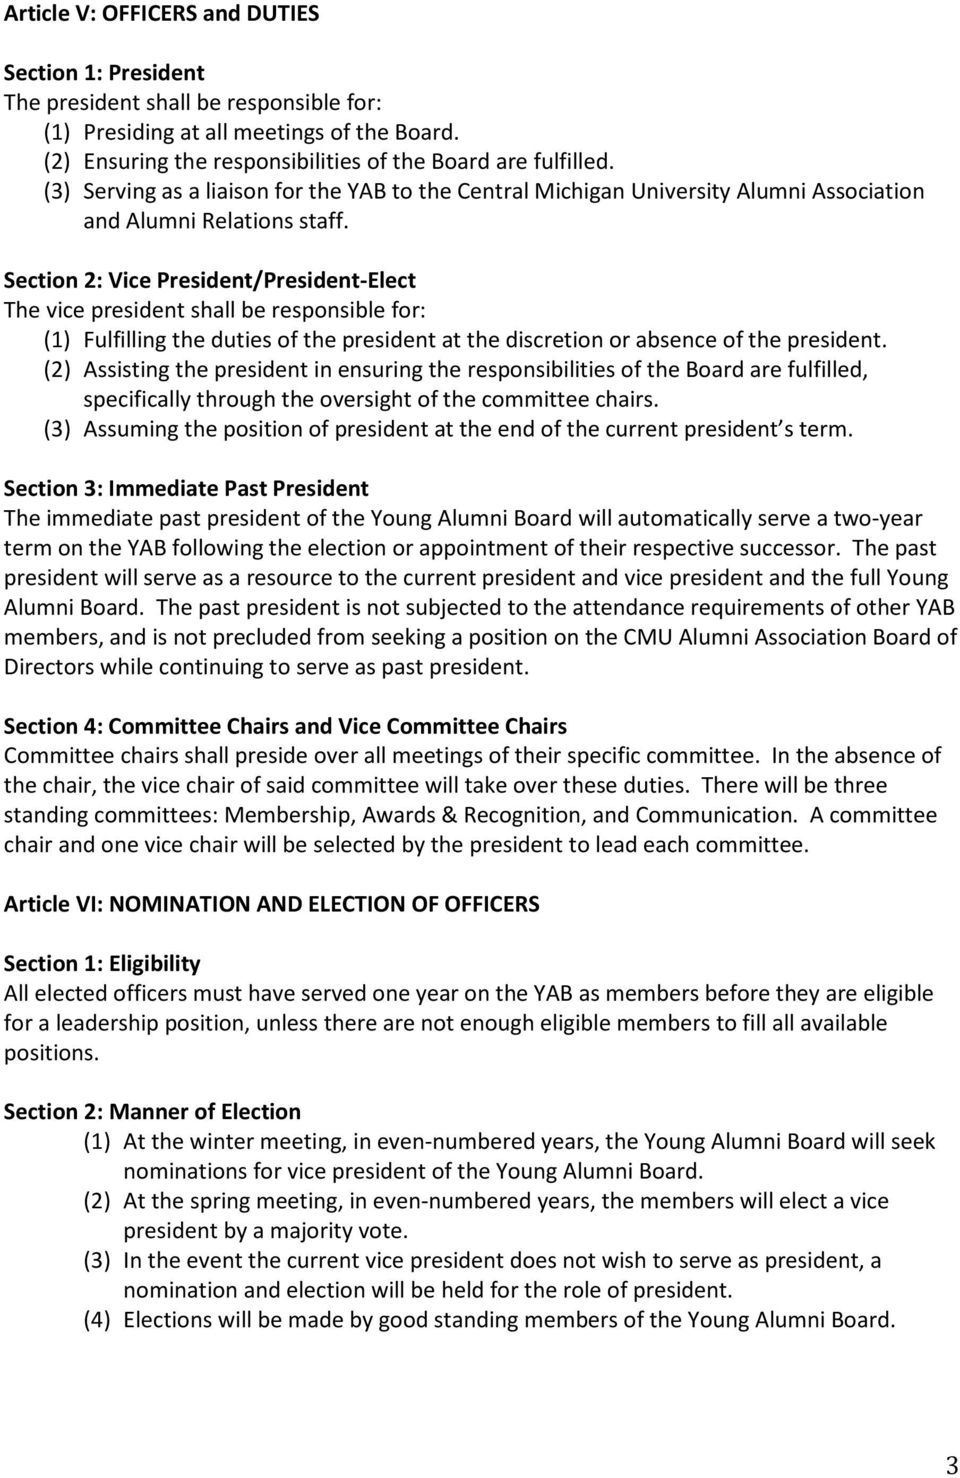 Section 2: Vice President/President-Elect The vice president shall be responsible for: (1) Fulfilling the duties of the president at the discretion or absence of the president.